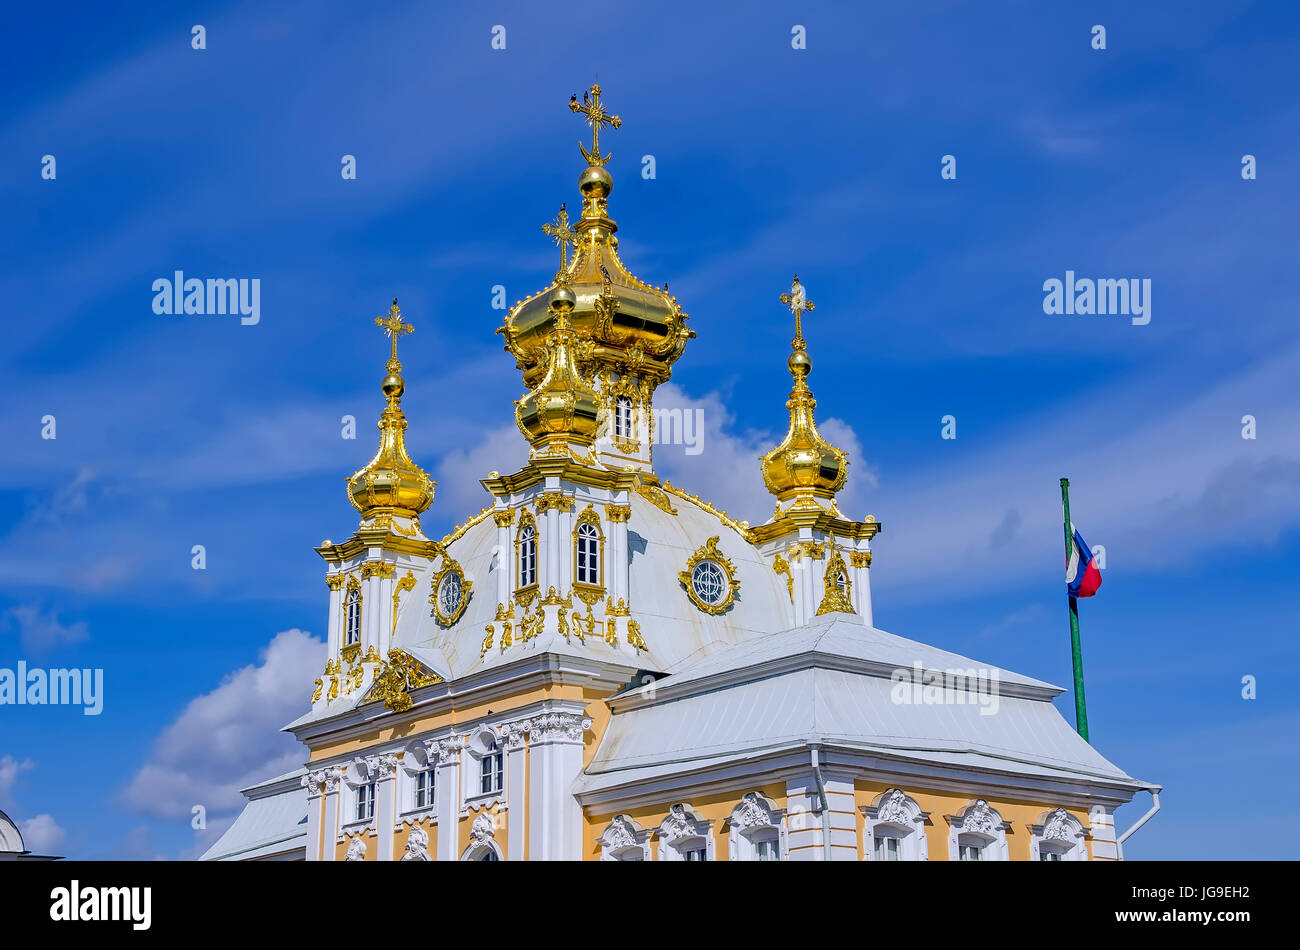 Dômes dorés Peterhof Palace de l'église au Grand Palace situé près de Saint Petersburg, Photo Stock